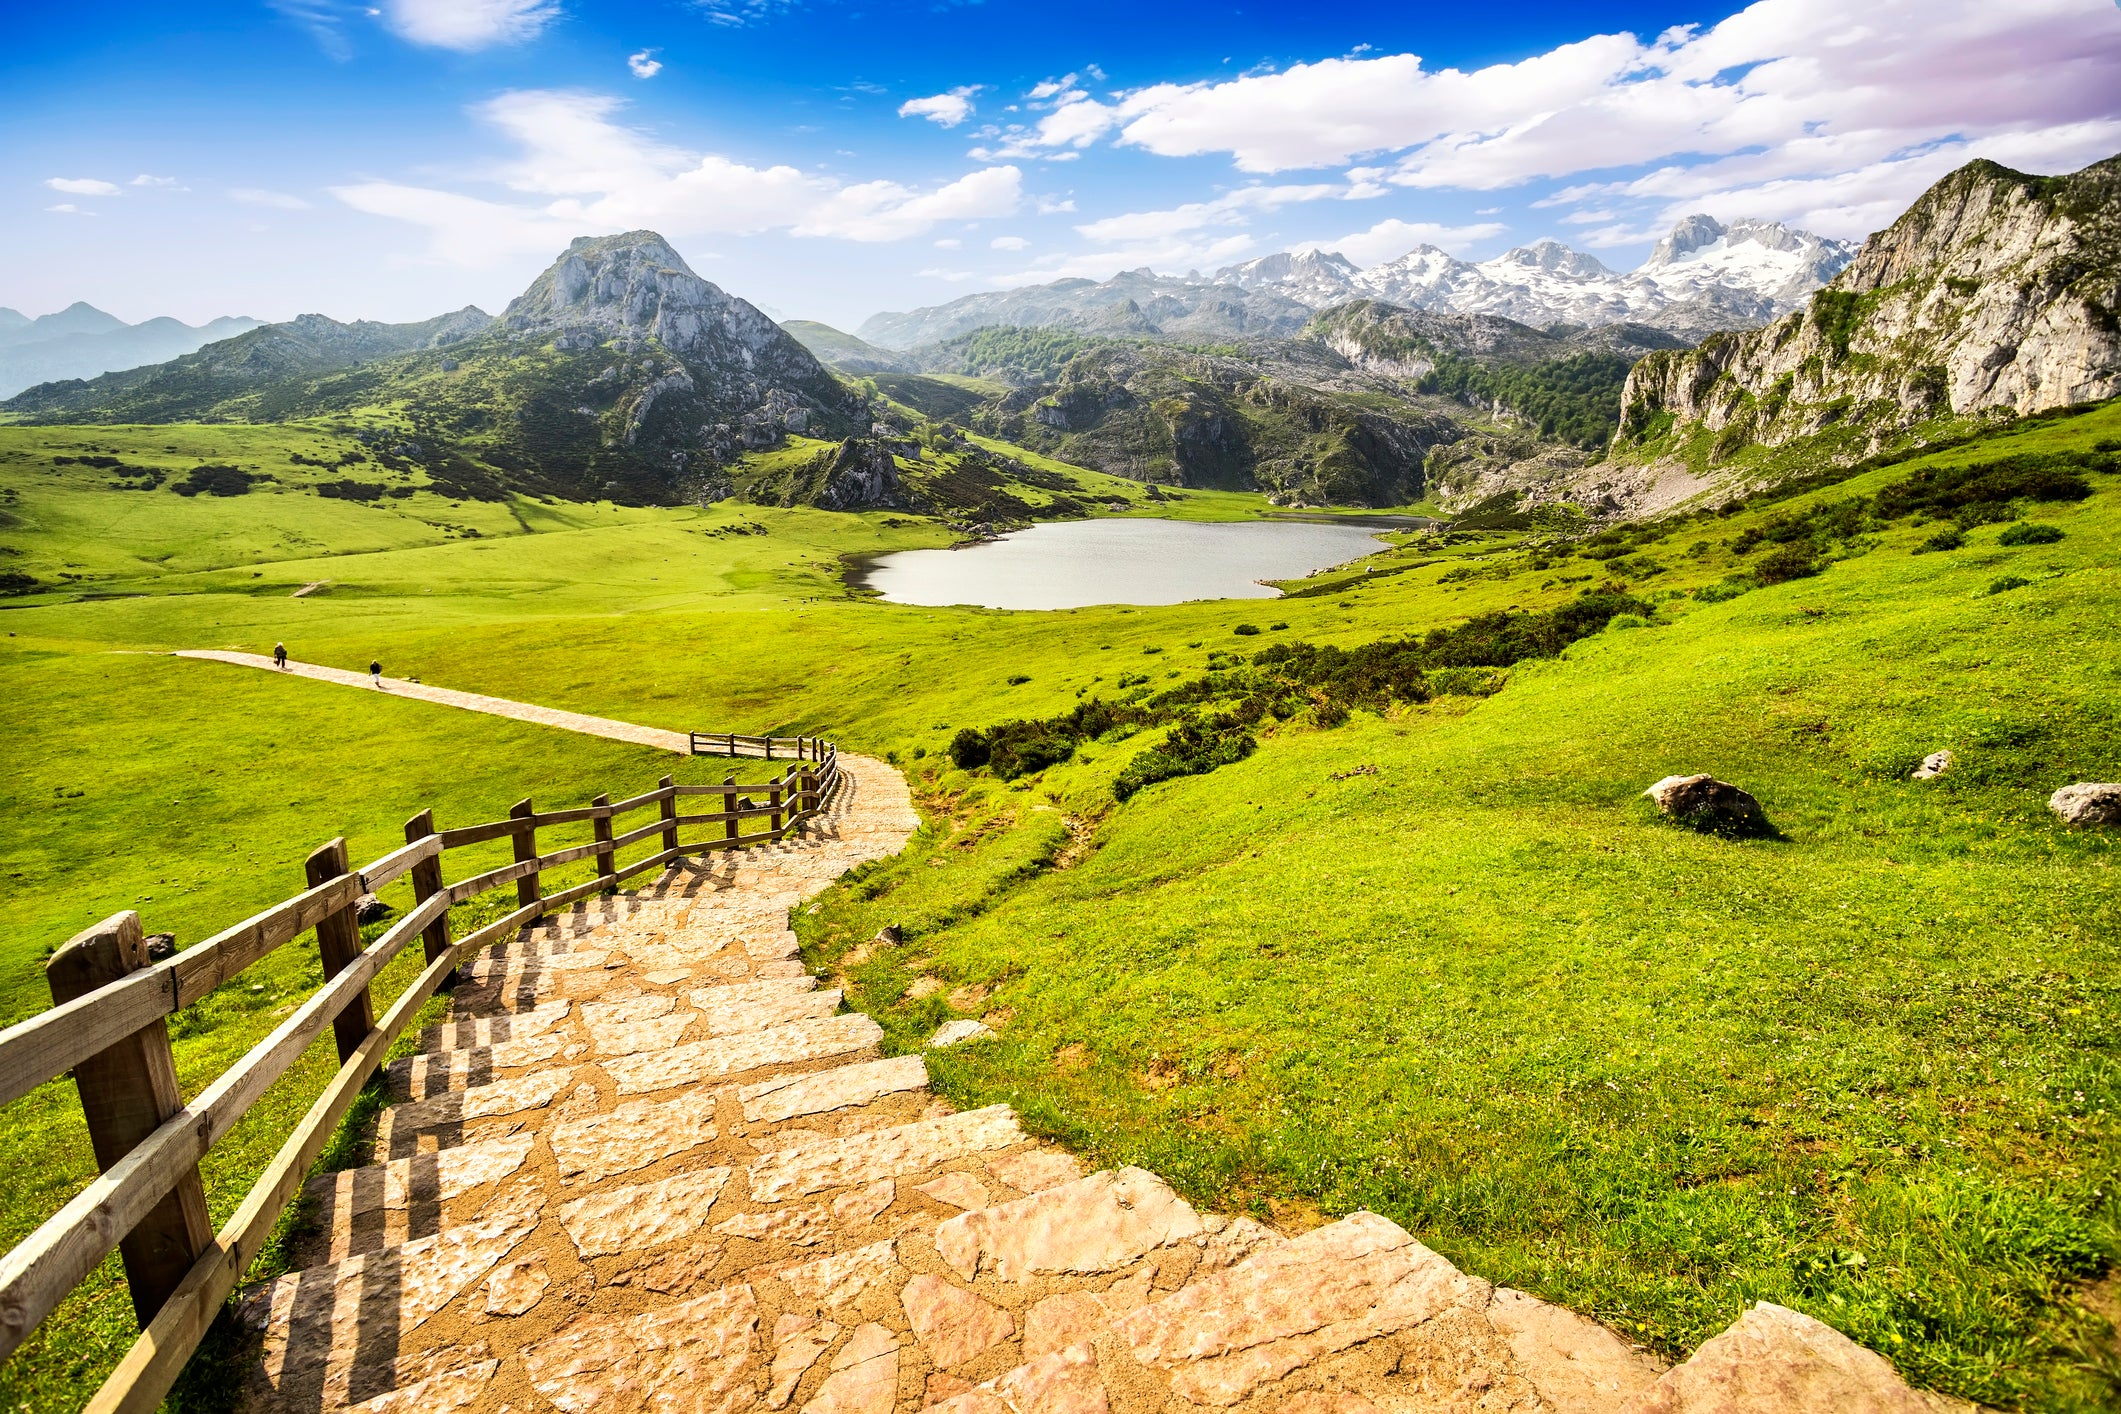 Picos de Europa: Is this jaw-dropping mountain range Spain's most underrated tourist attraction?